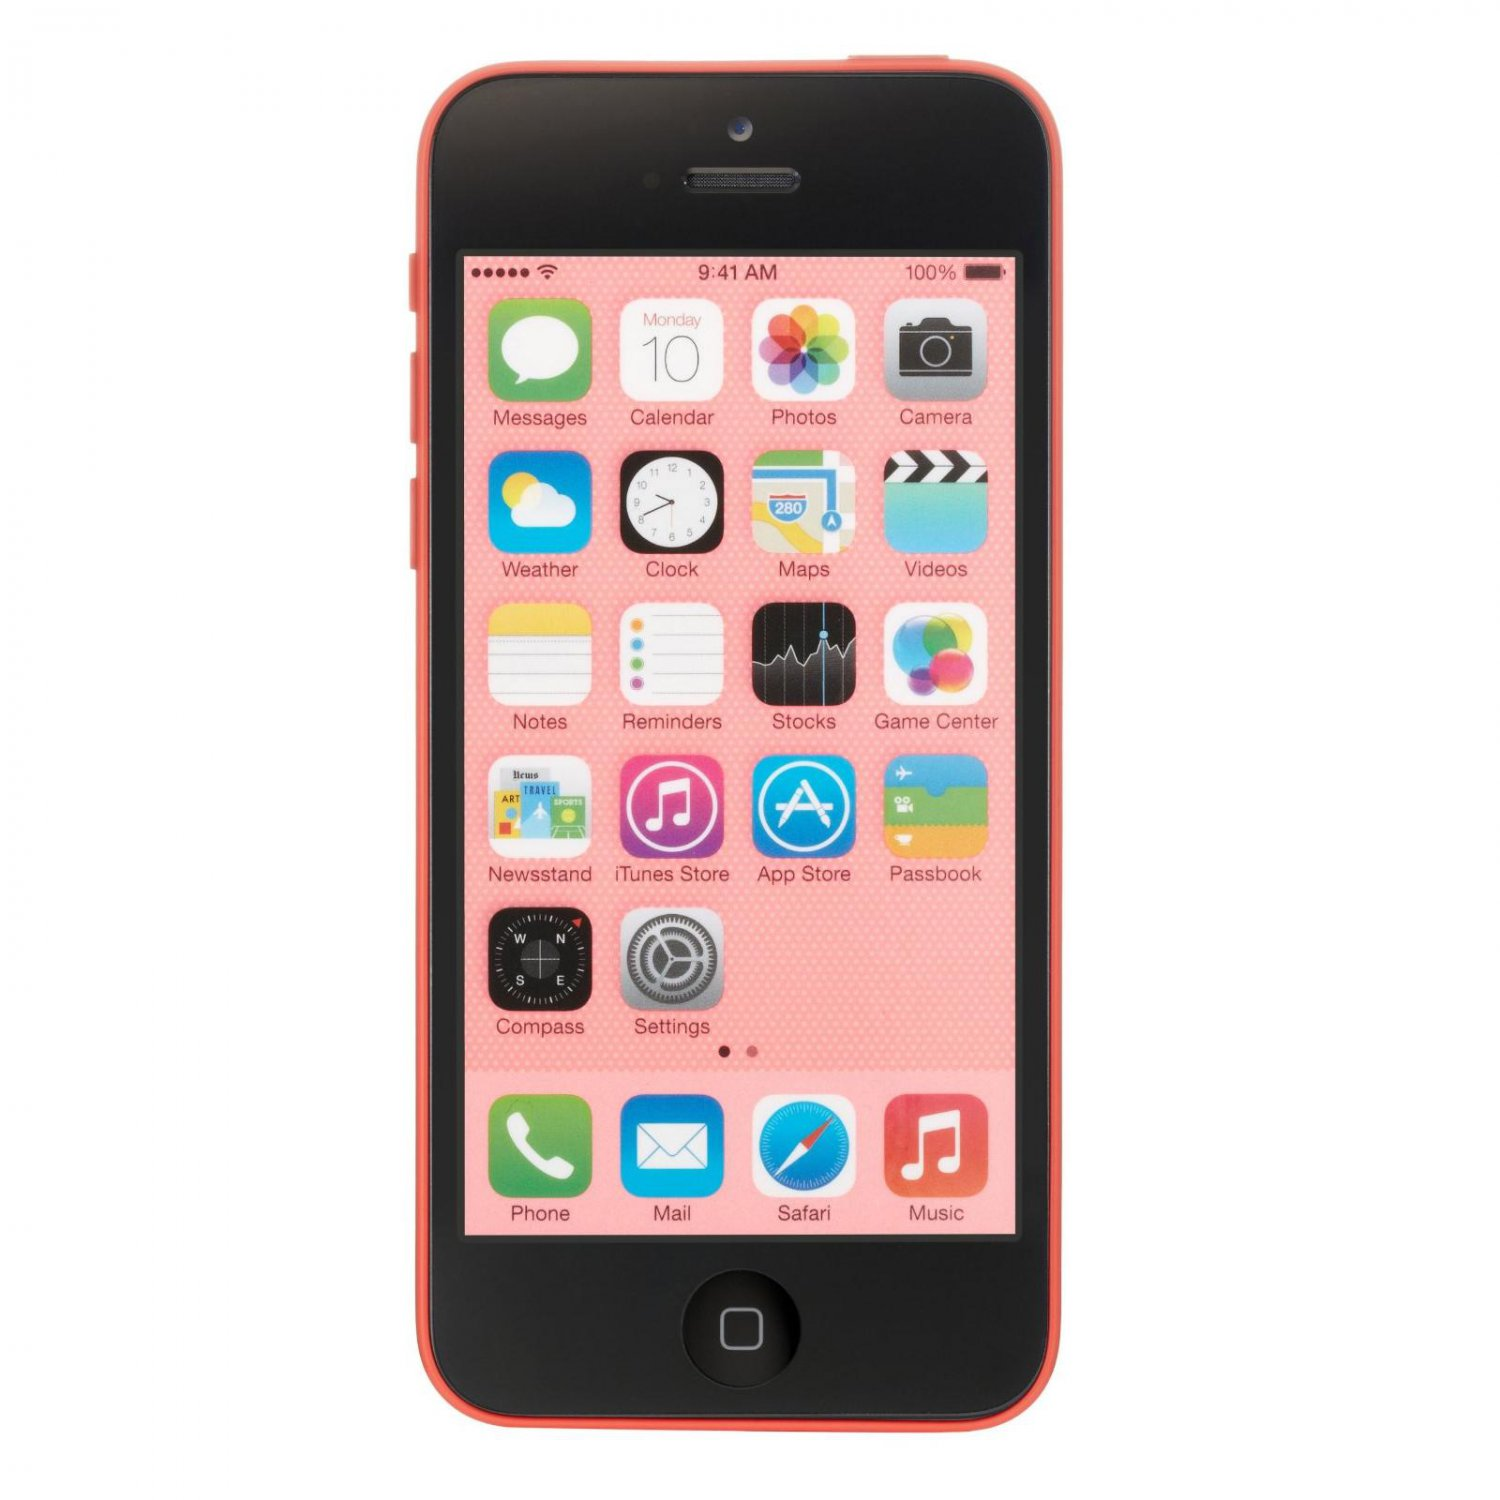 Released in September, , the iPhone 5C for T-Mobile can be yours today without contract at a more budget-friendly price. Buying an iPhone 5C for T-Mobile service from third party vendors is a smart move to get Apple's iPhone without contract for lower price and avoid spending fortune on it.